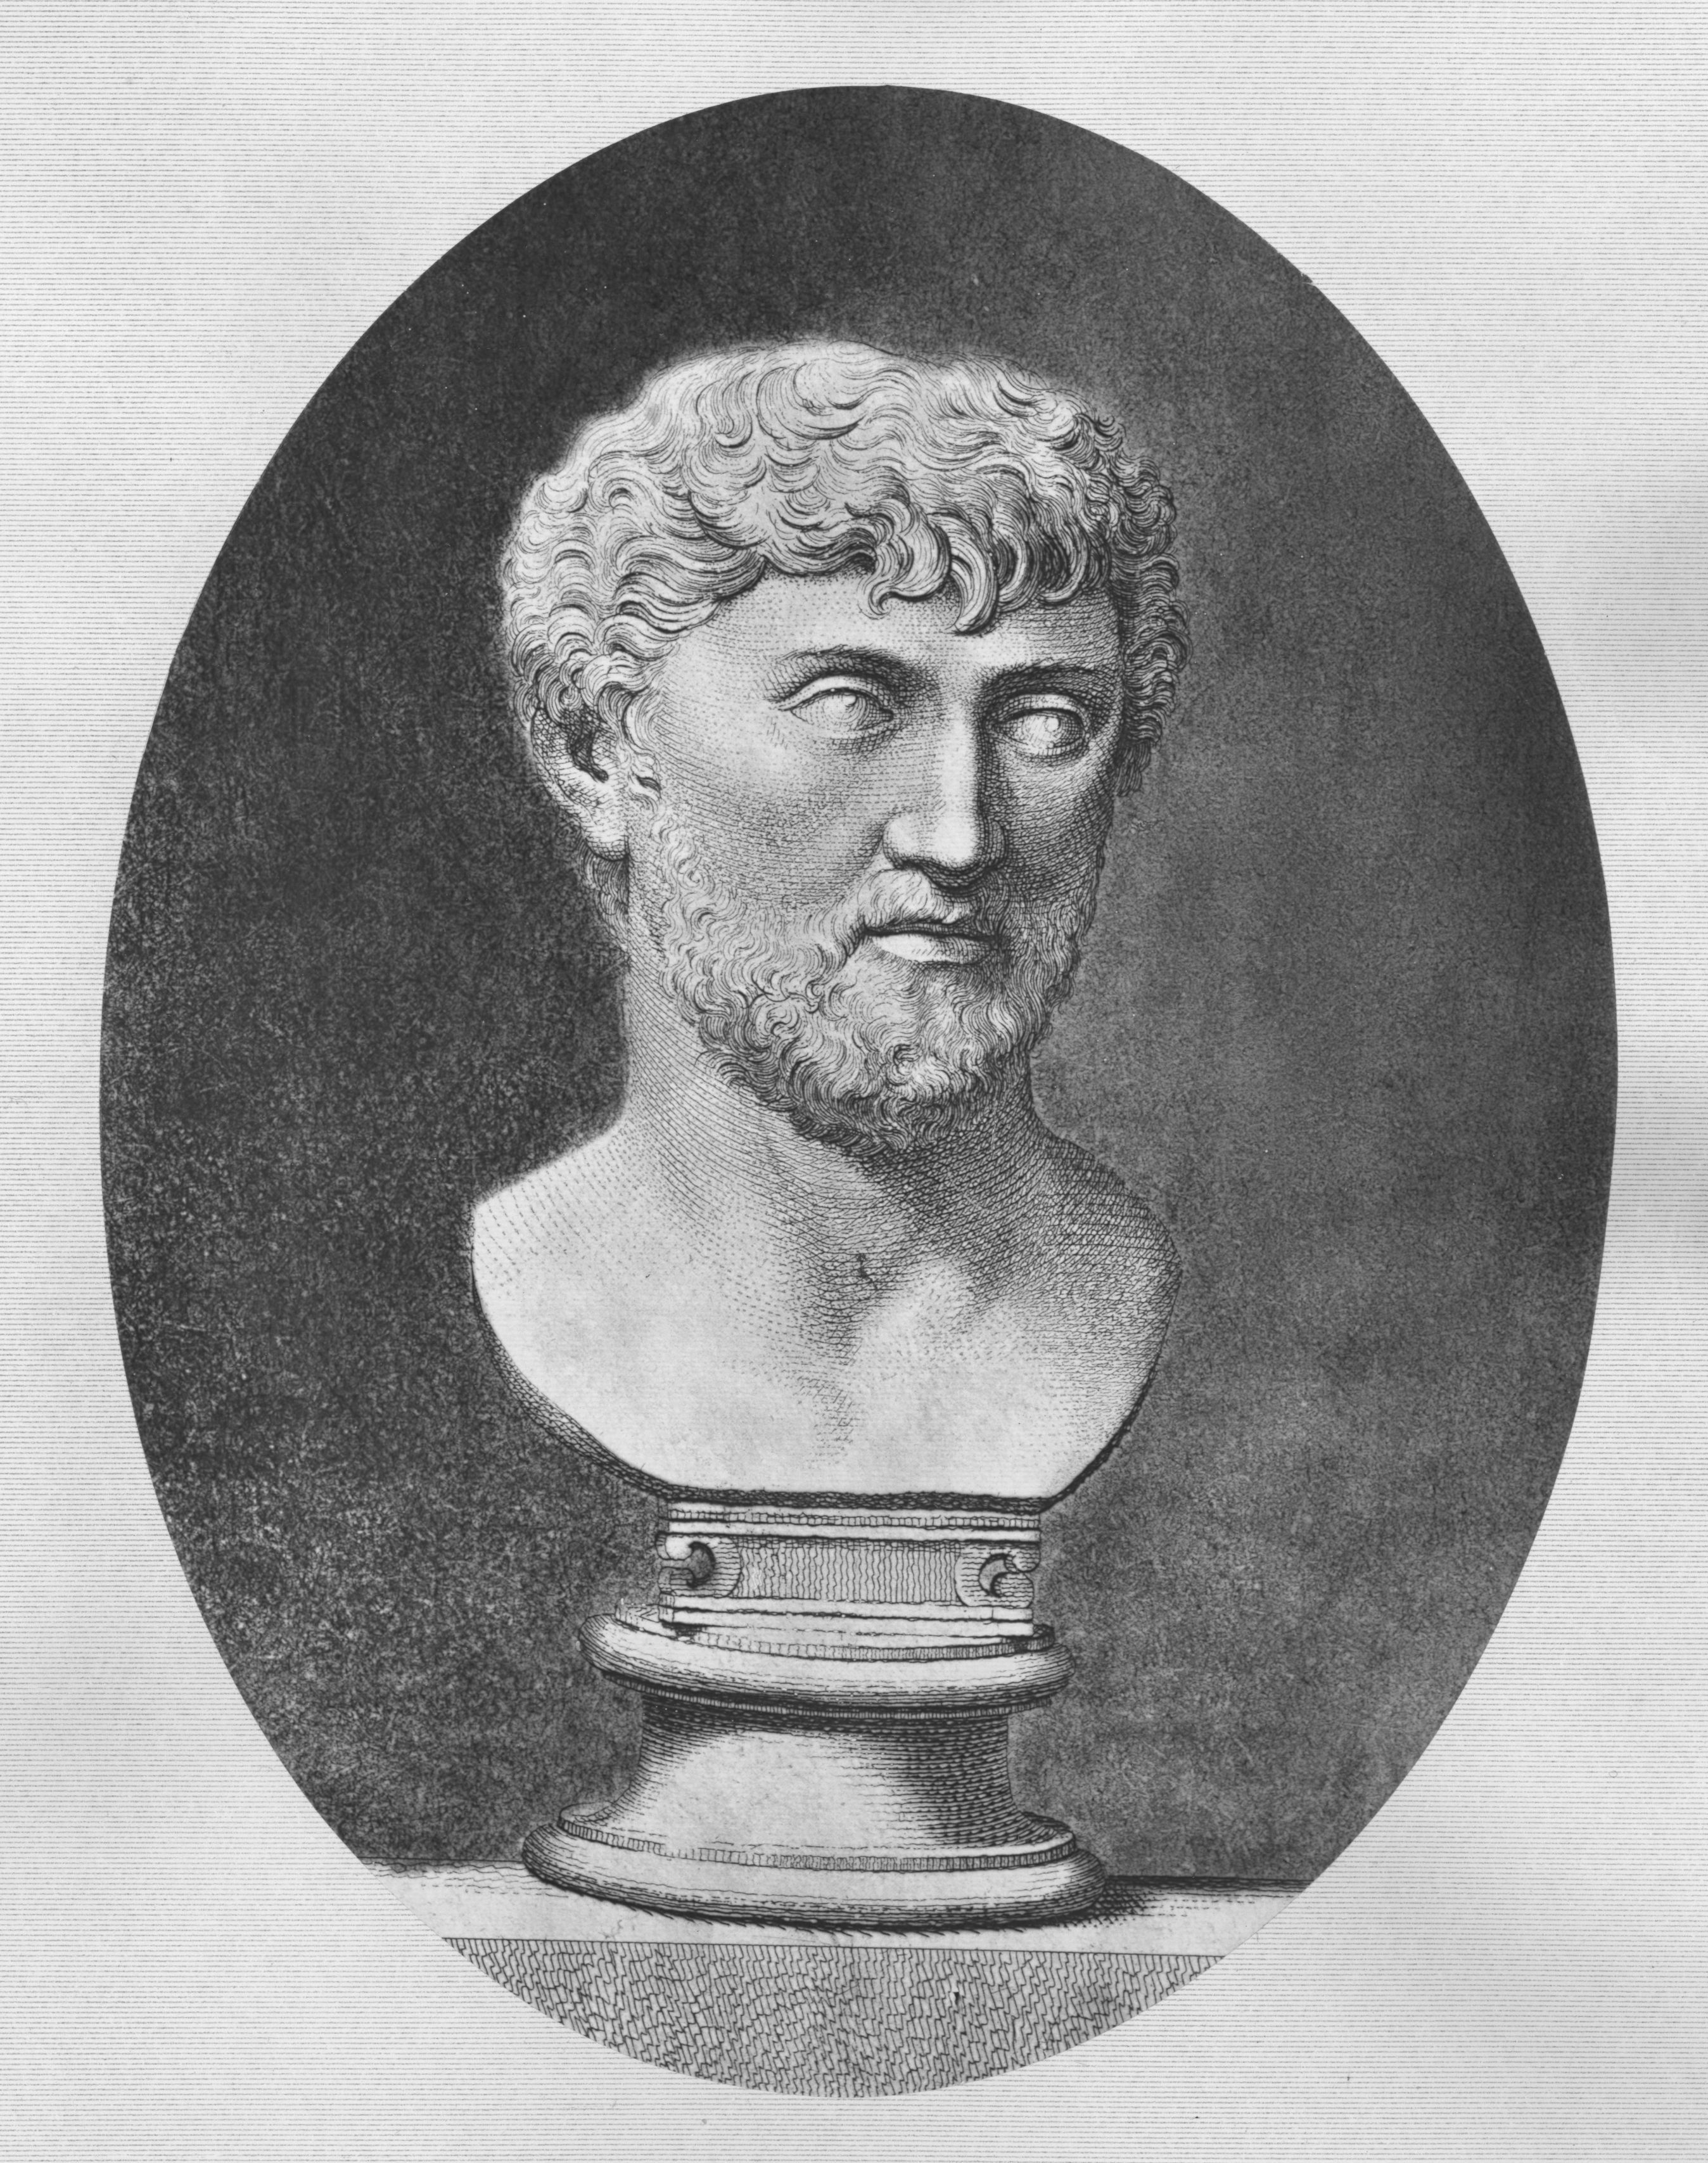 Lucretius Roman poet and philosopher